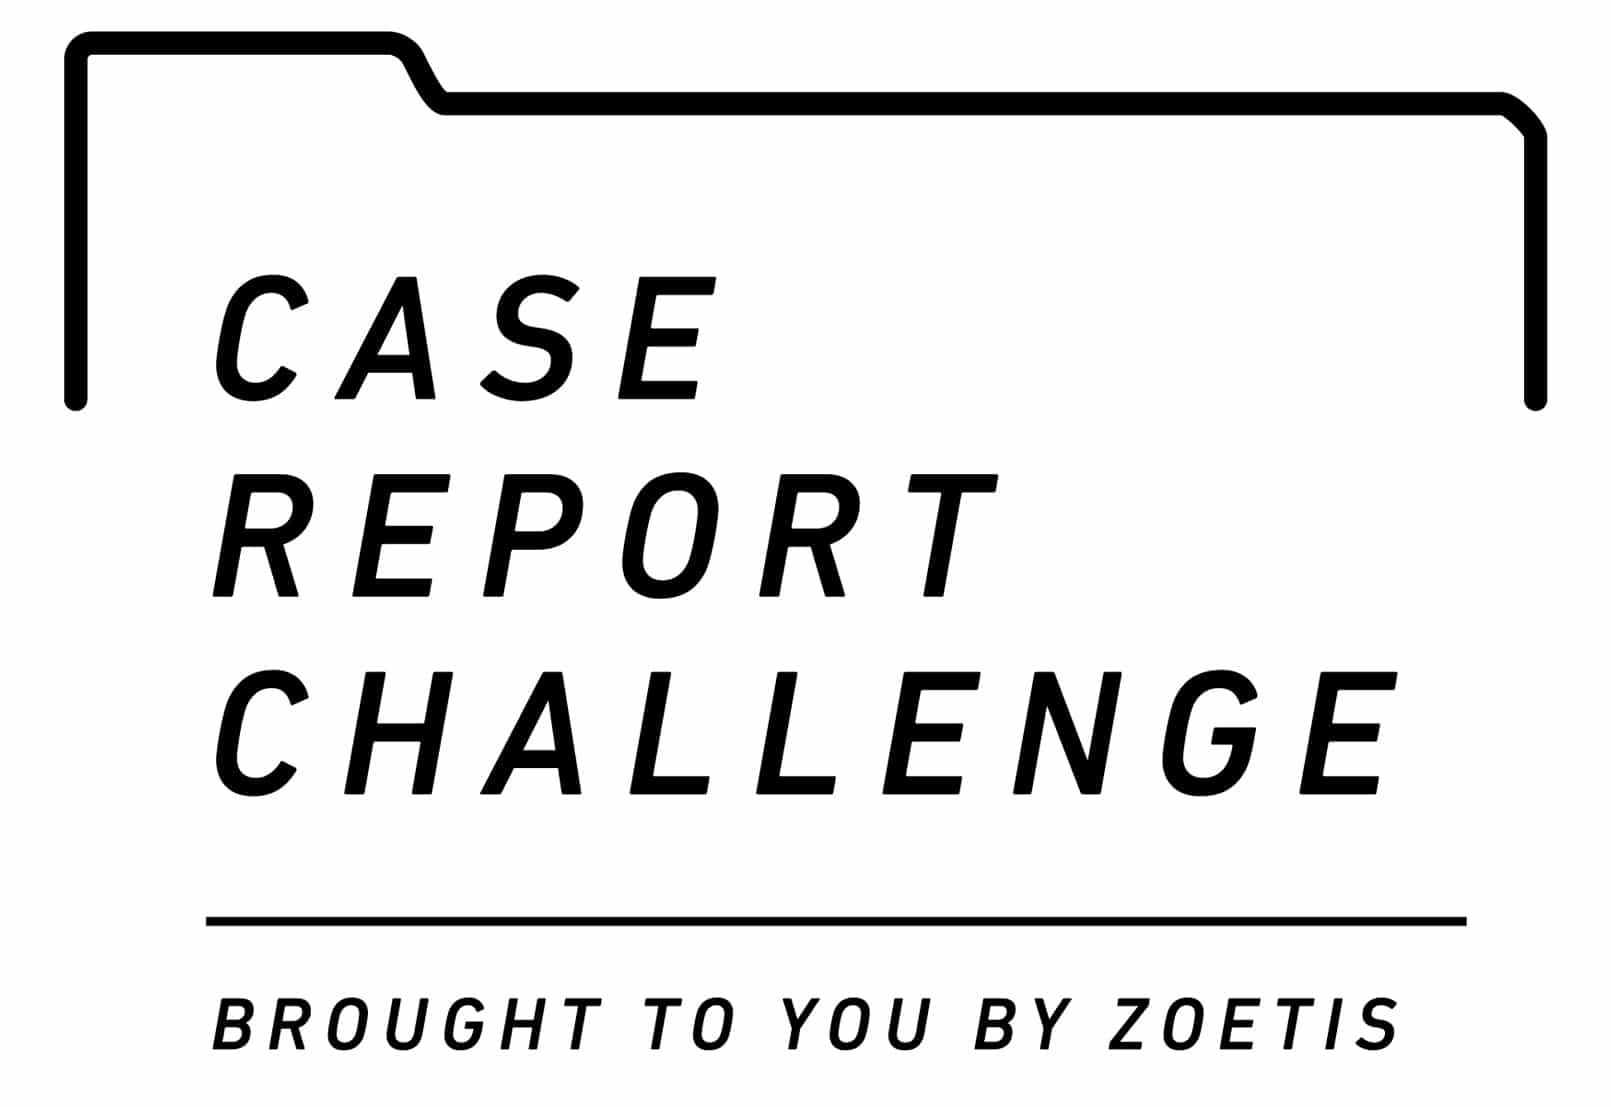 Introducing the Case Report Challenge!